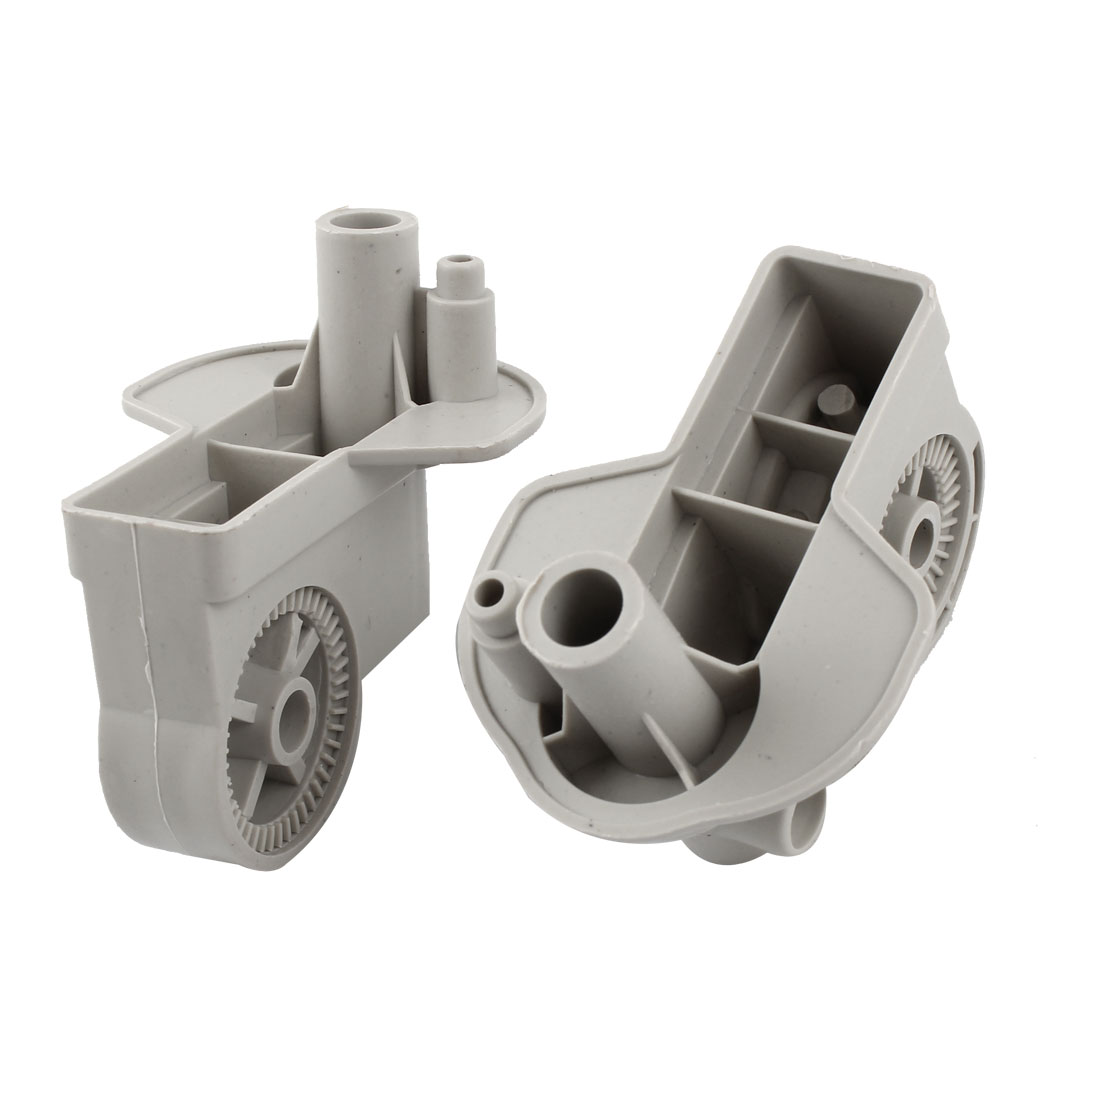 2PCS Gray Plastic Electric Fan Elbow Connectors 85mm x 62mm x 83mm